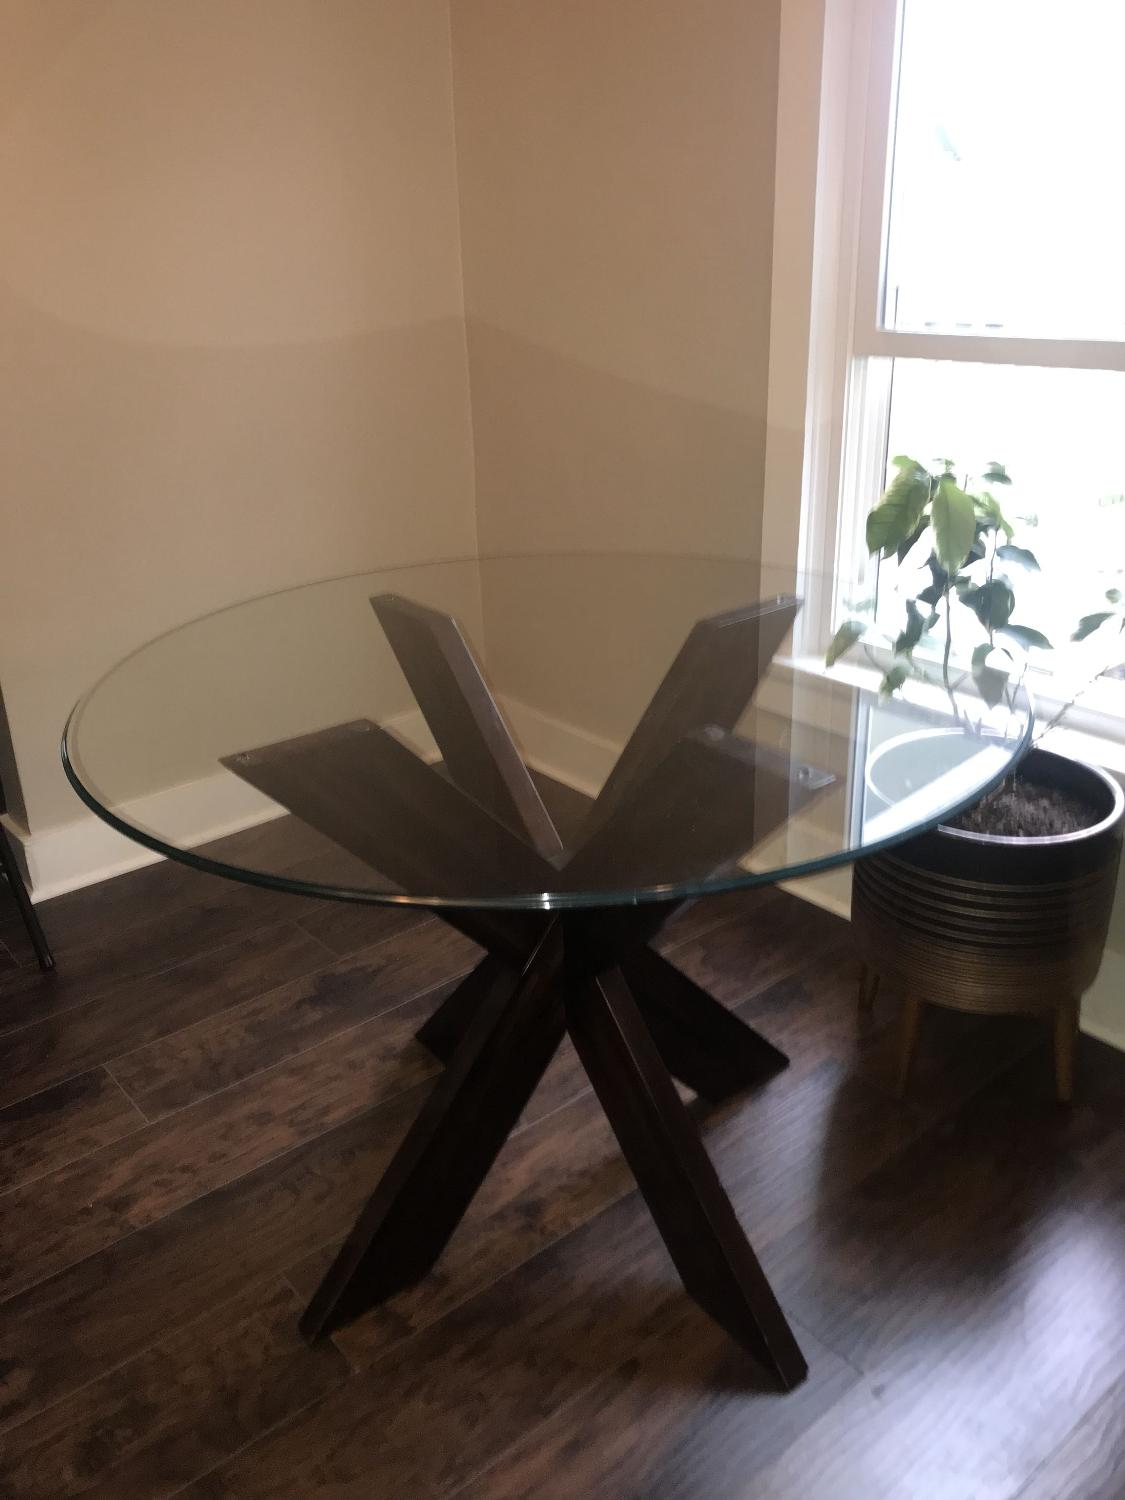 Find More Pier 1 Espresso X Table Base With Glass Table Top For Sale At Up To 90 Off